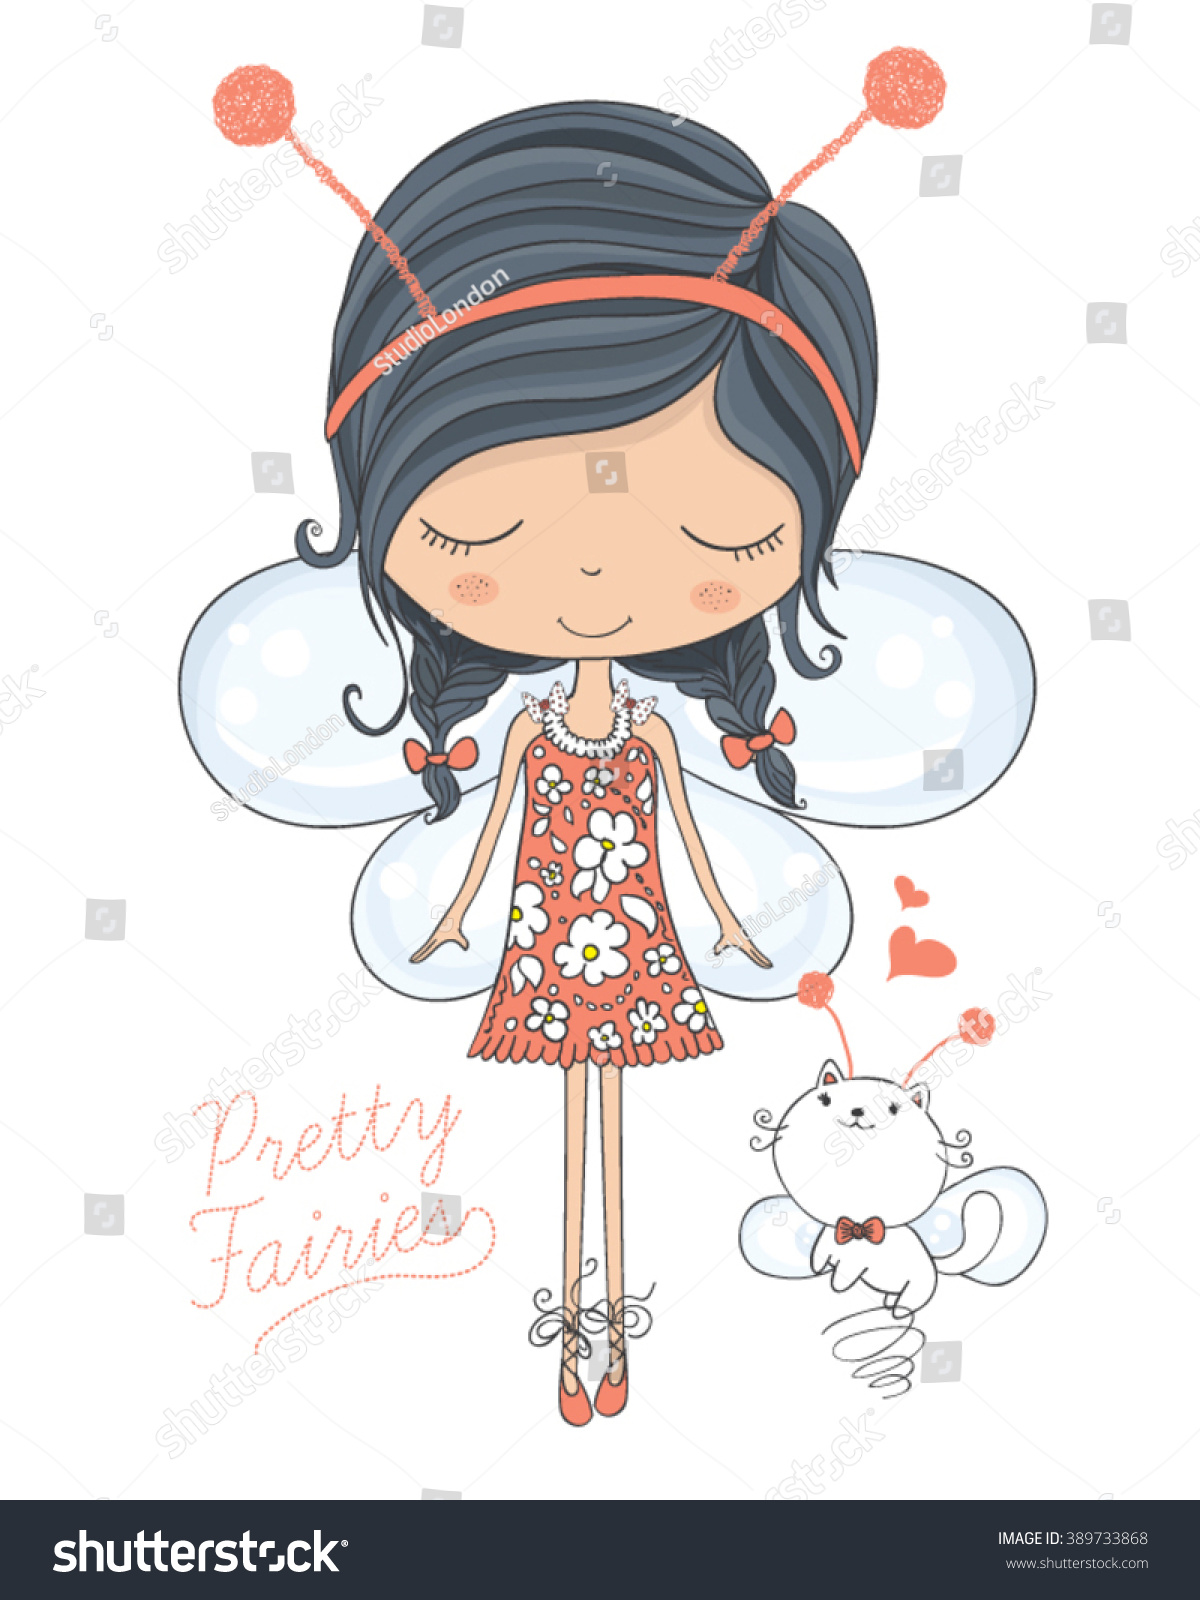 fairy vectorcute vectortshirt printbook illustrations stock